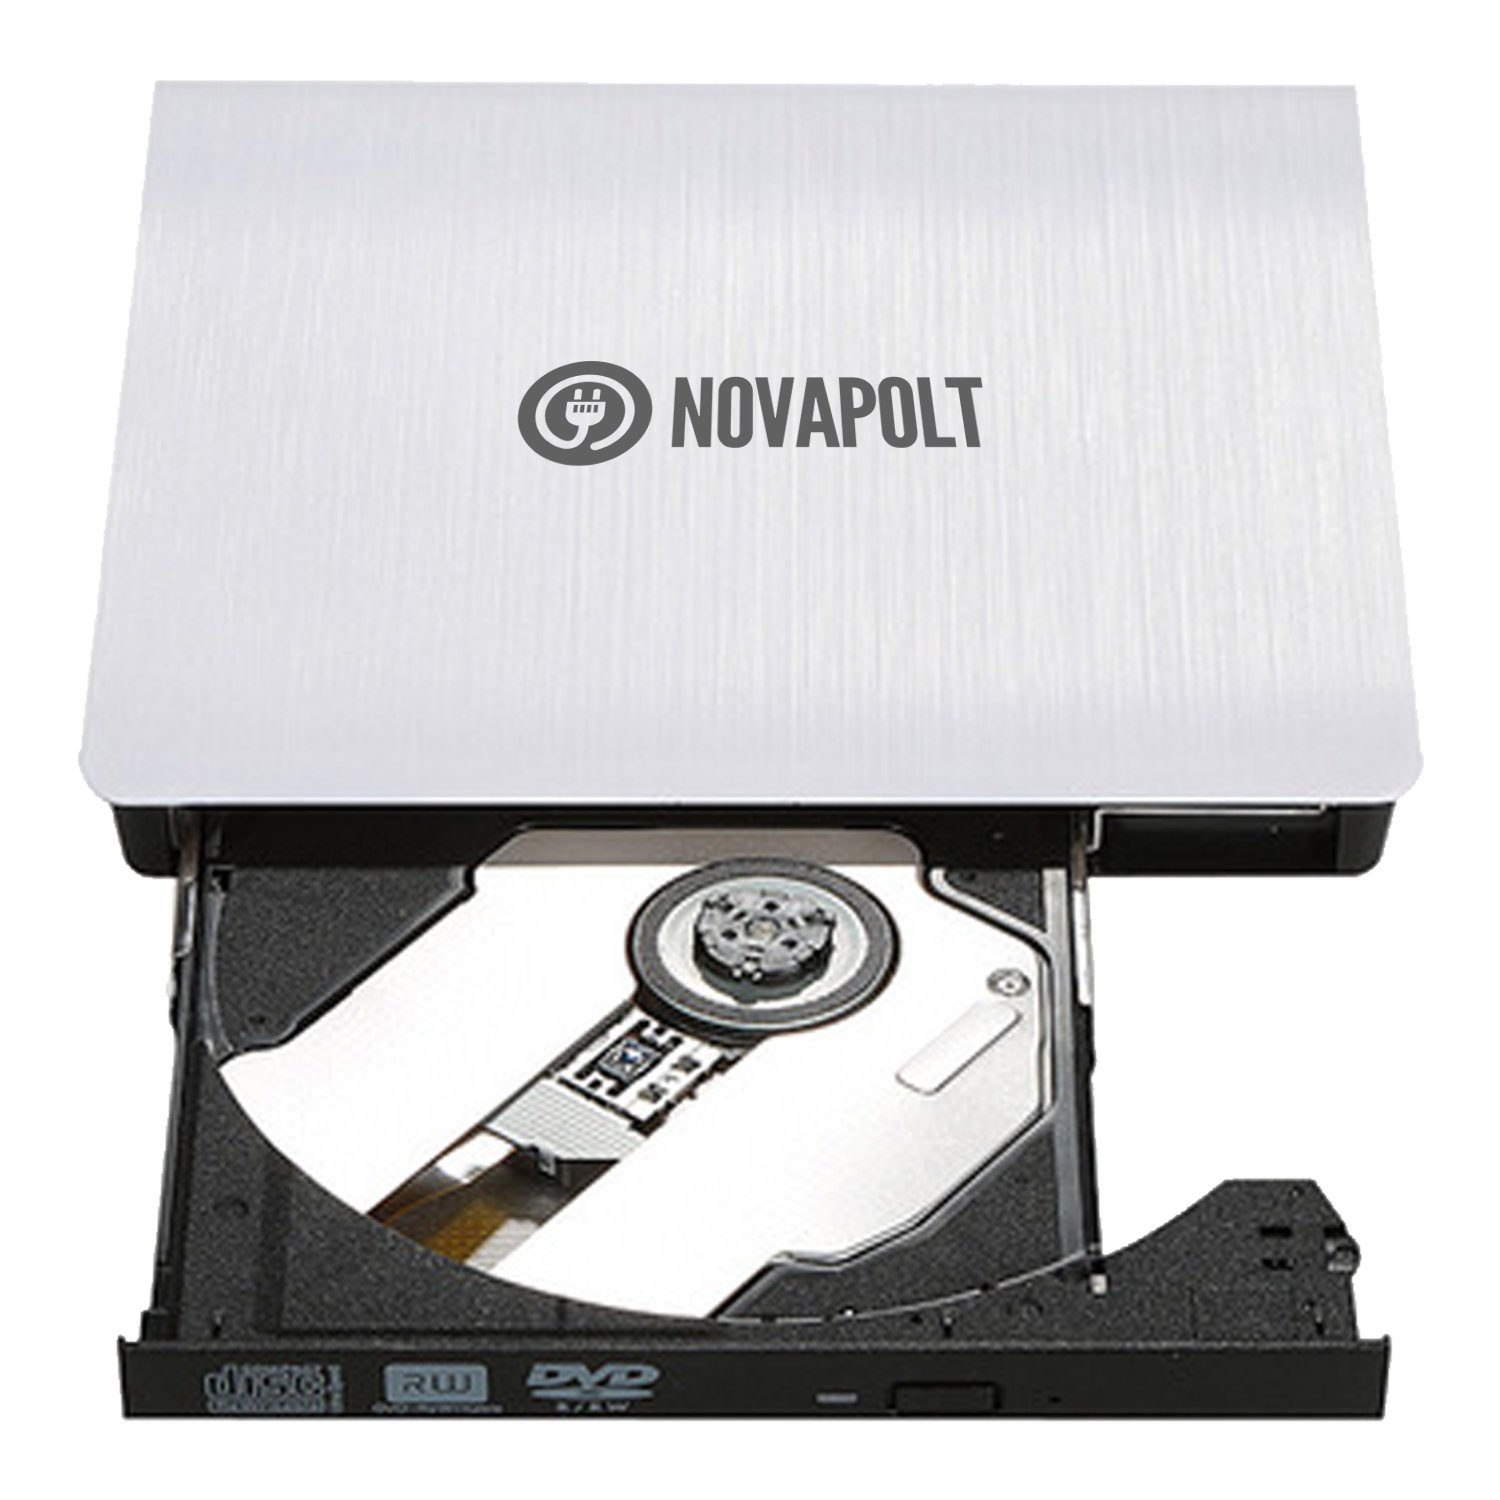 Novapolt USB 3.0 External DVD and CD Drive